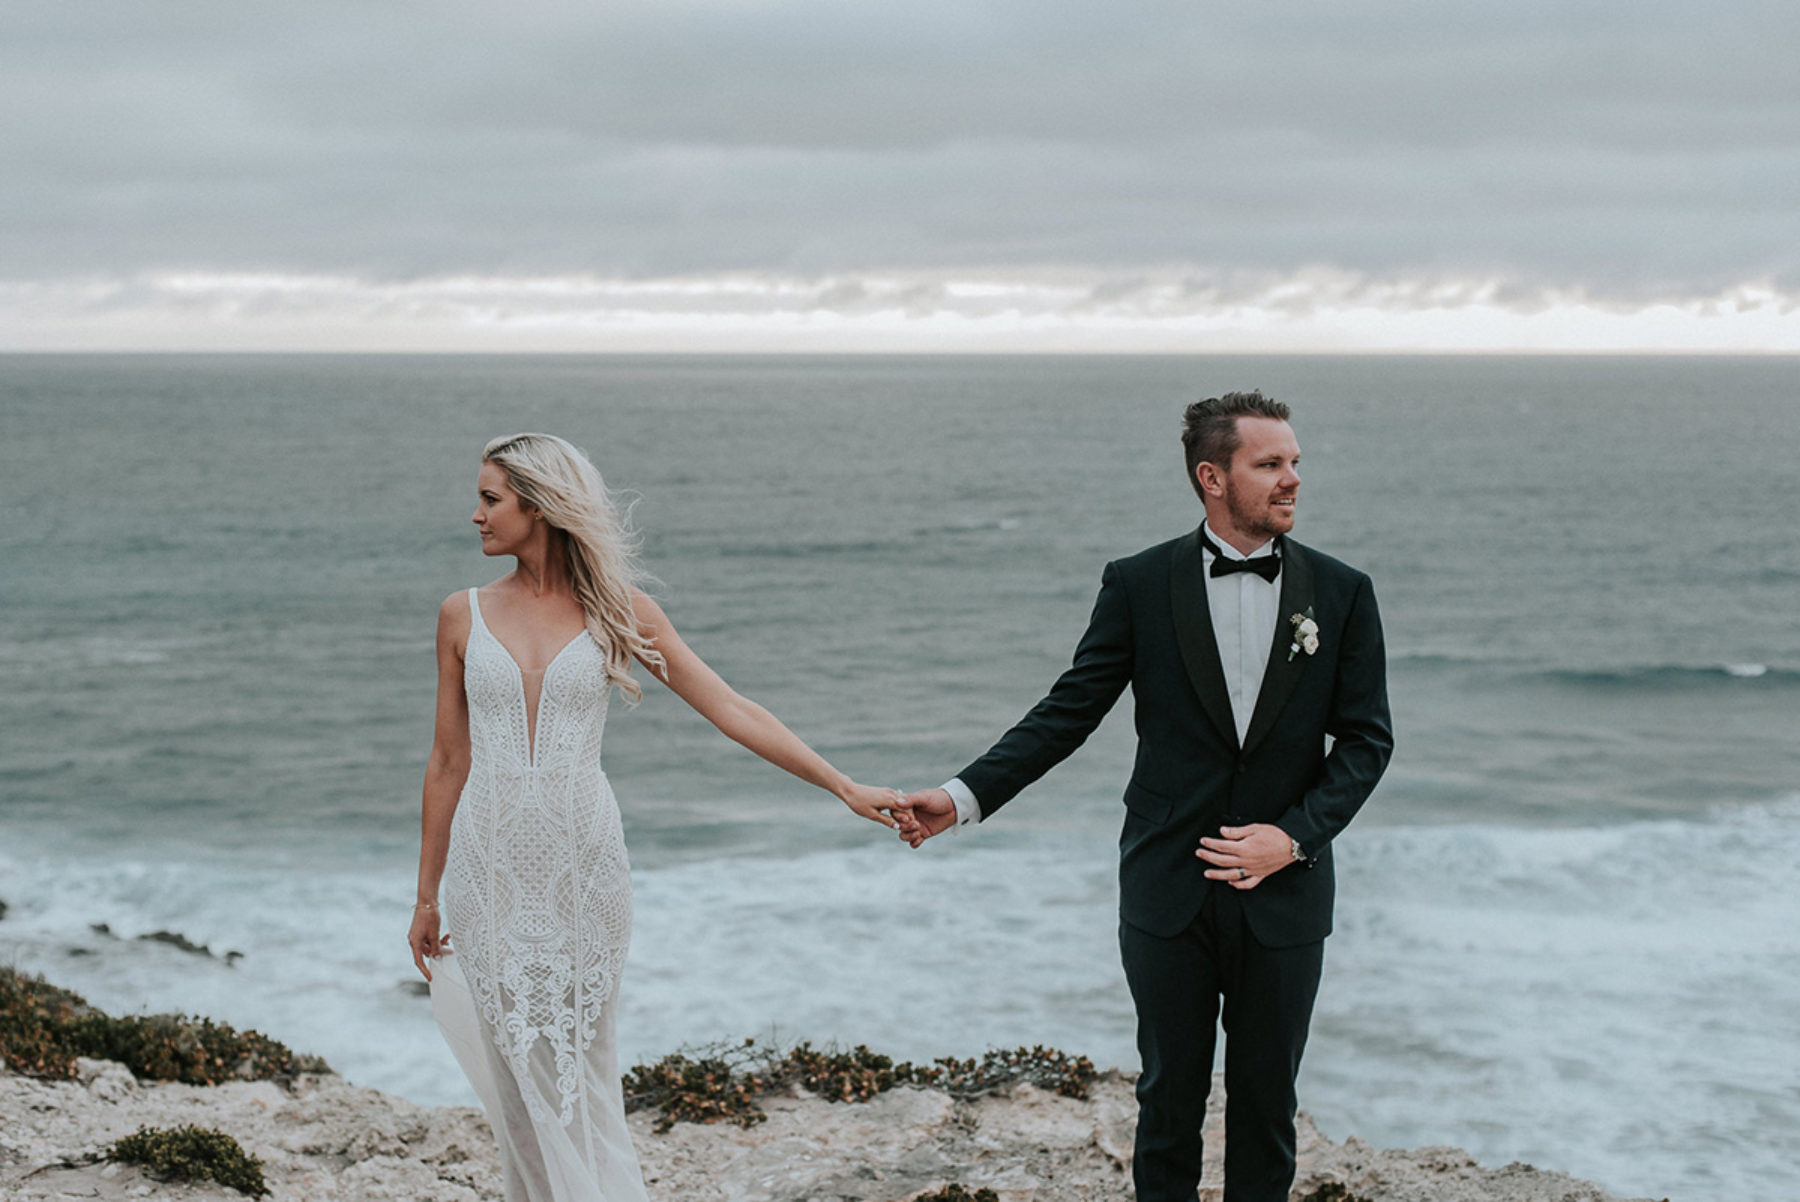 Margaret River wedding photographer Shannon Stent